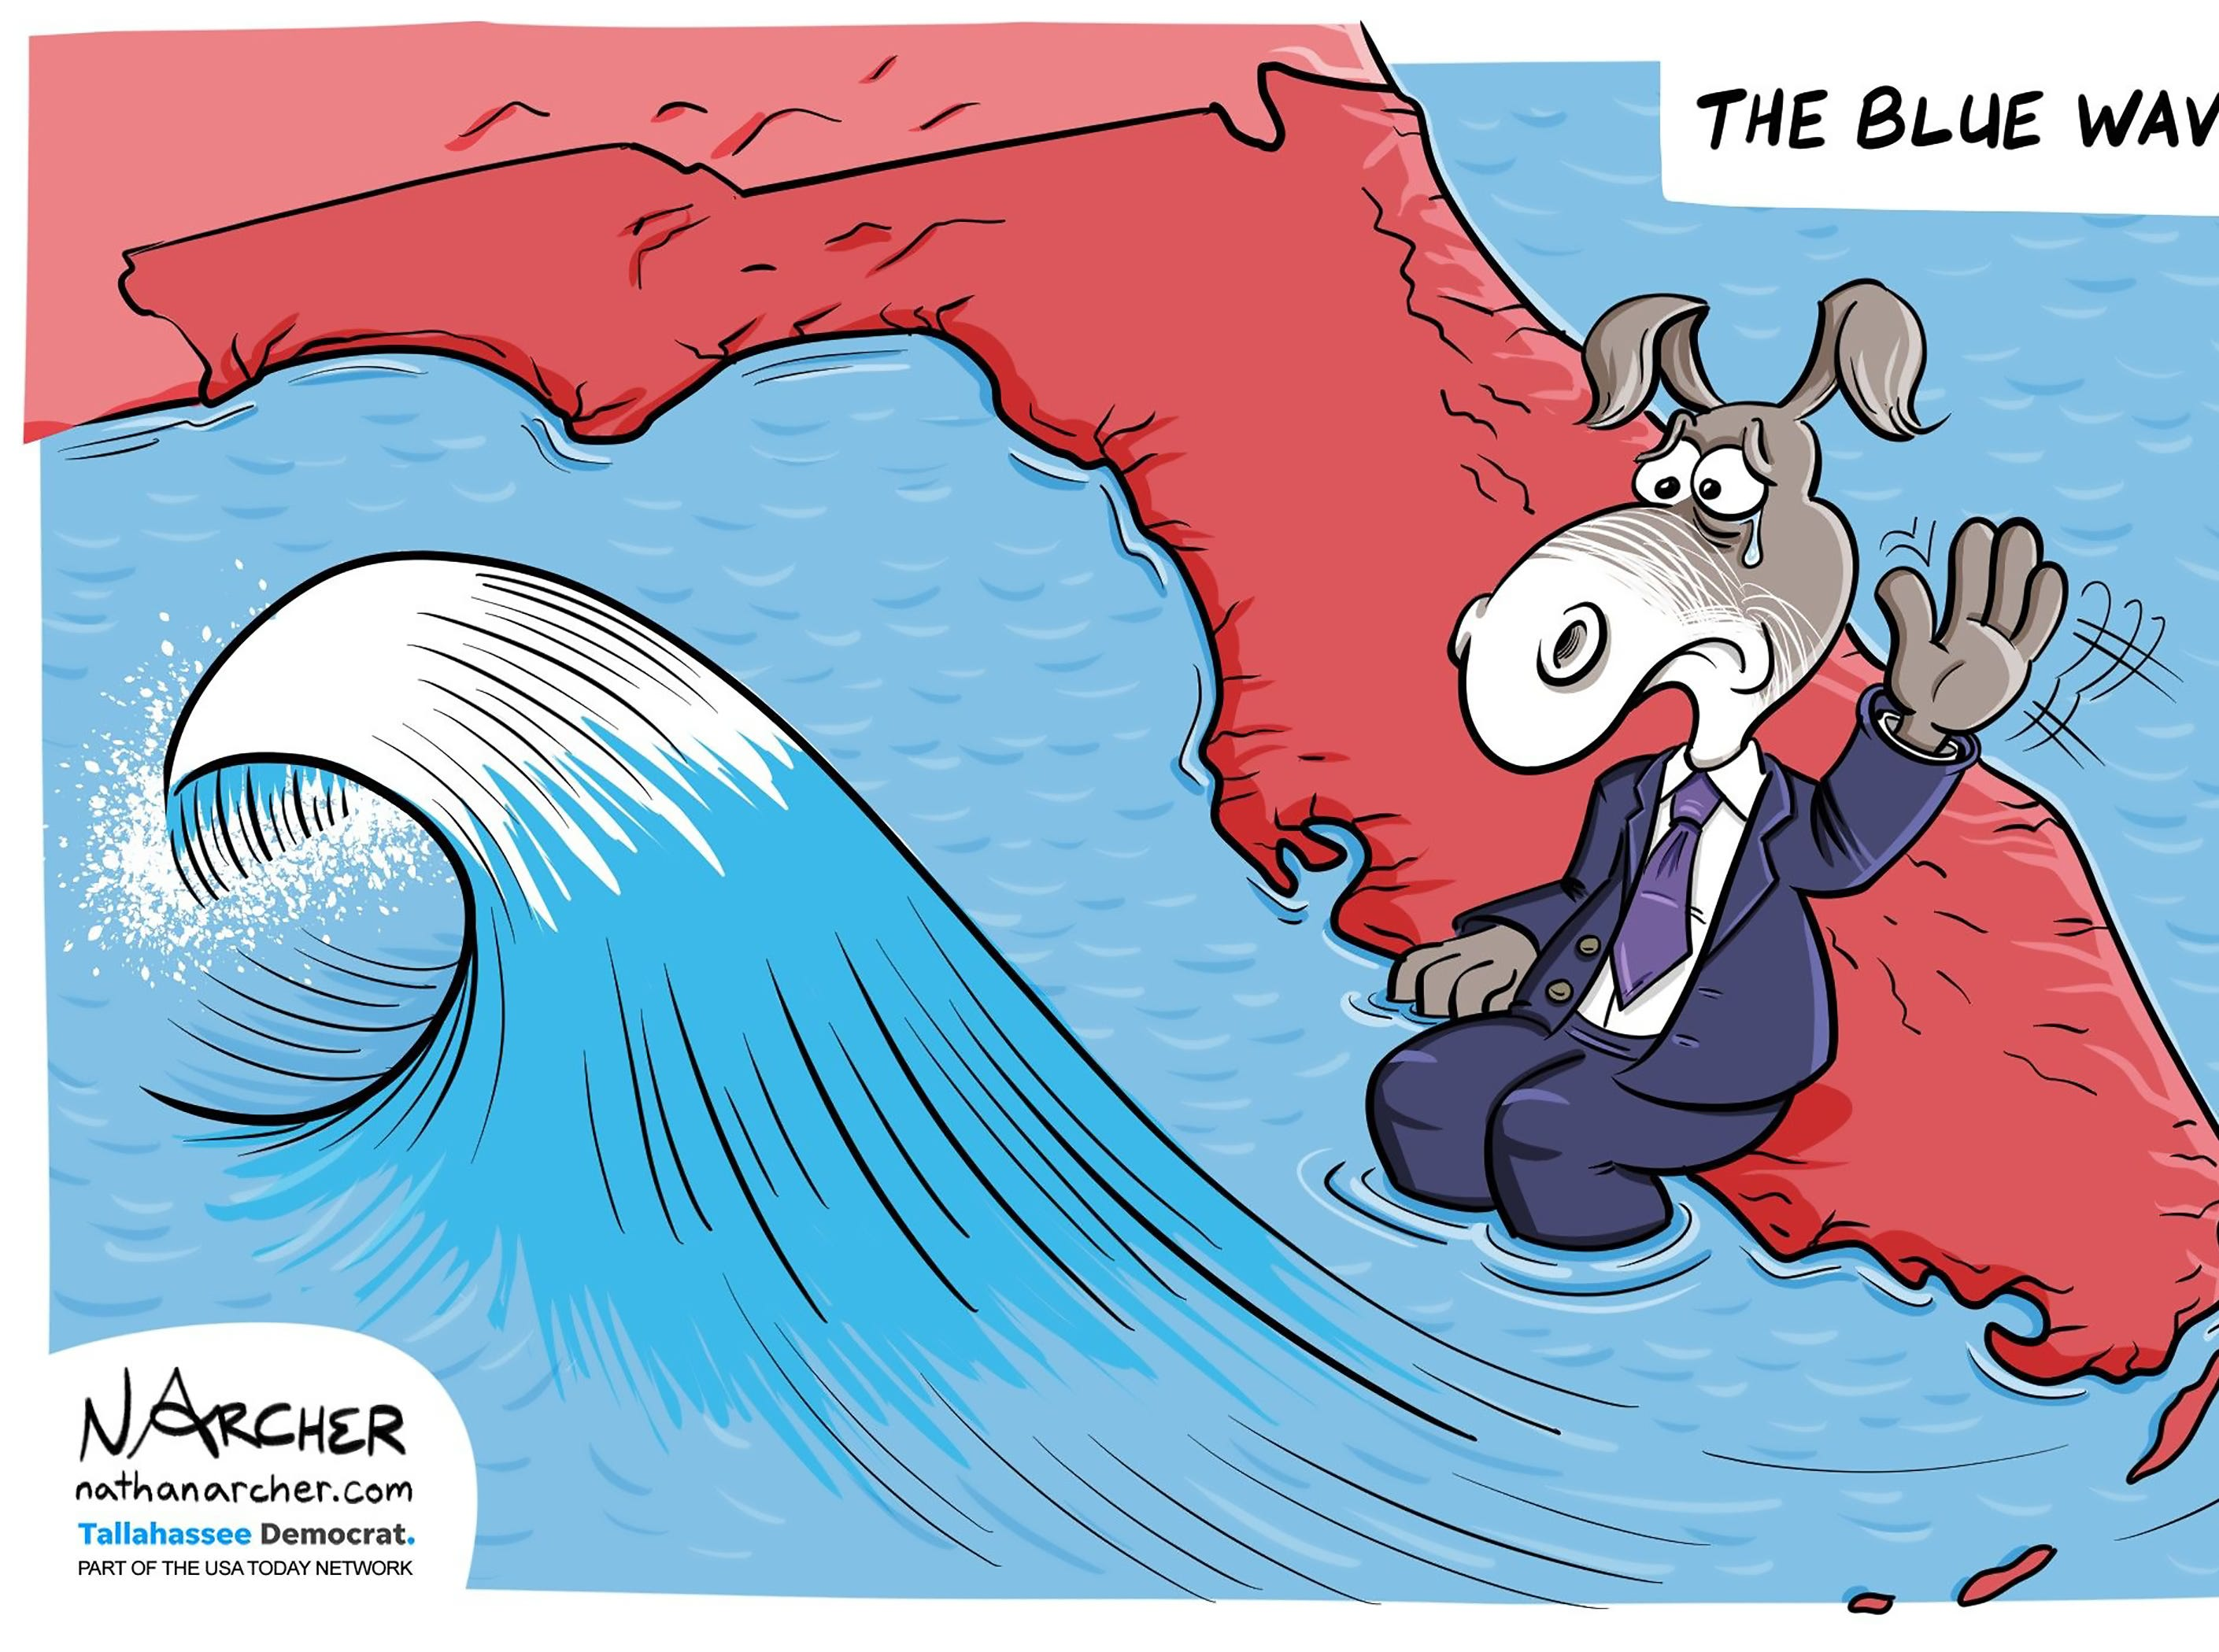 The cartoonist's homepage, tallahassee.com/opinion